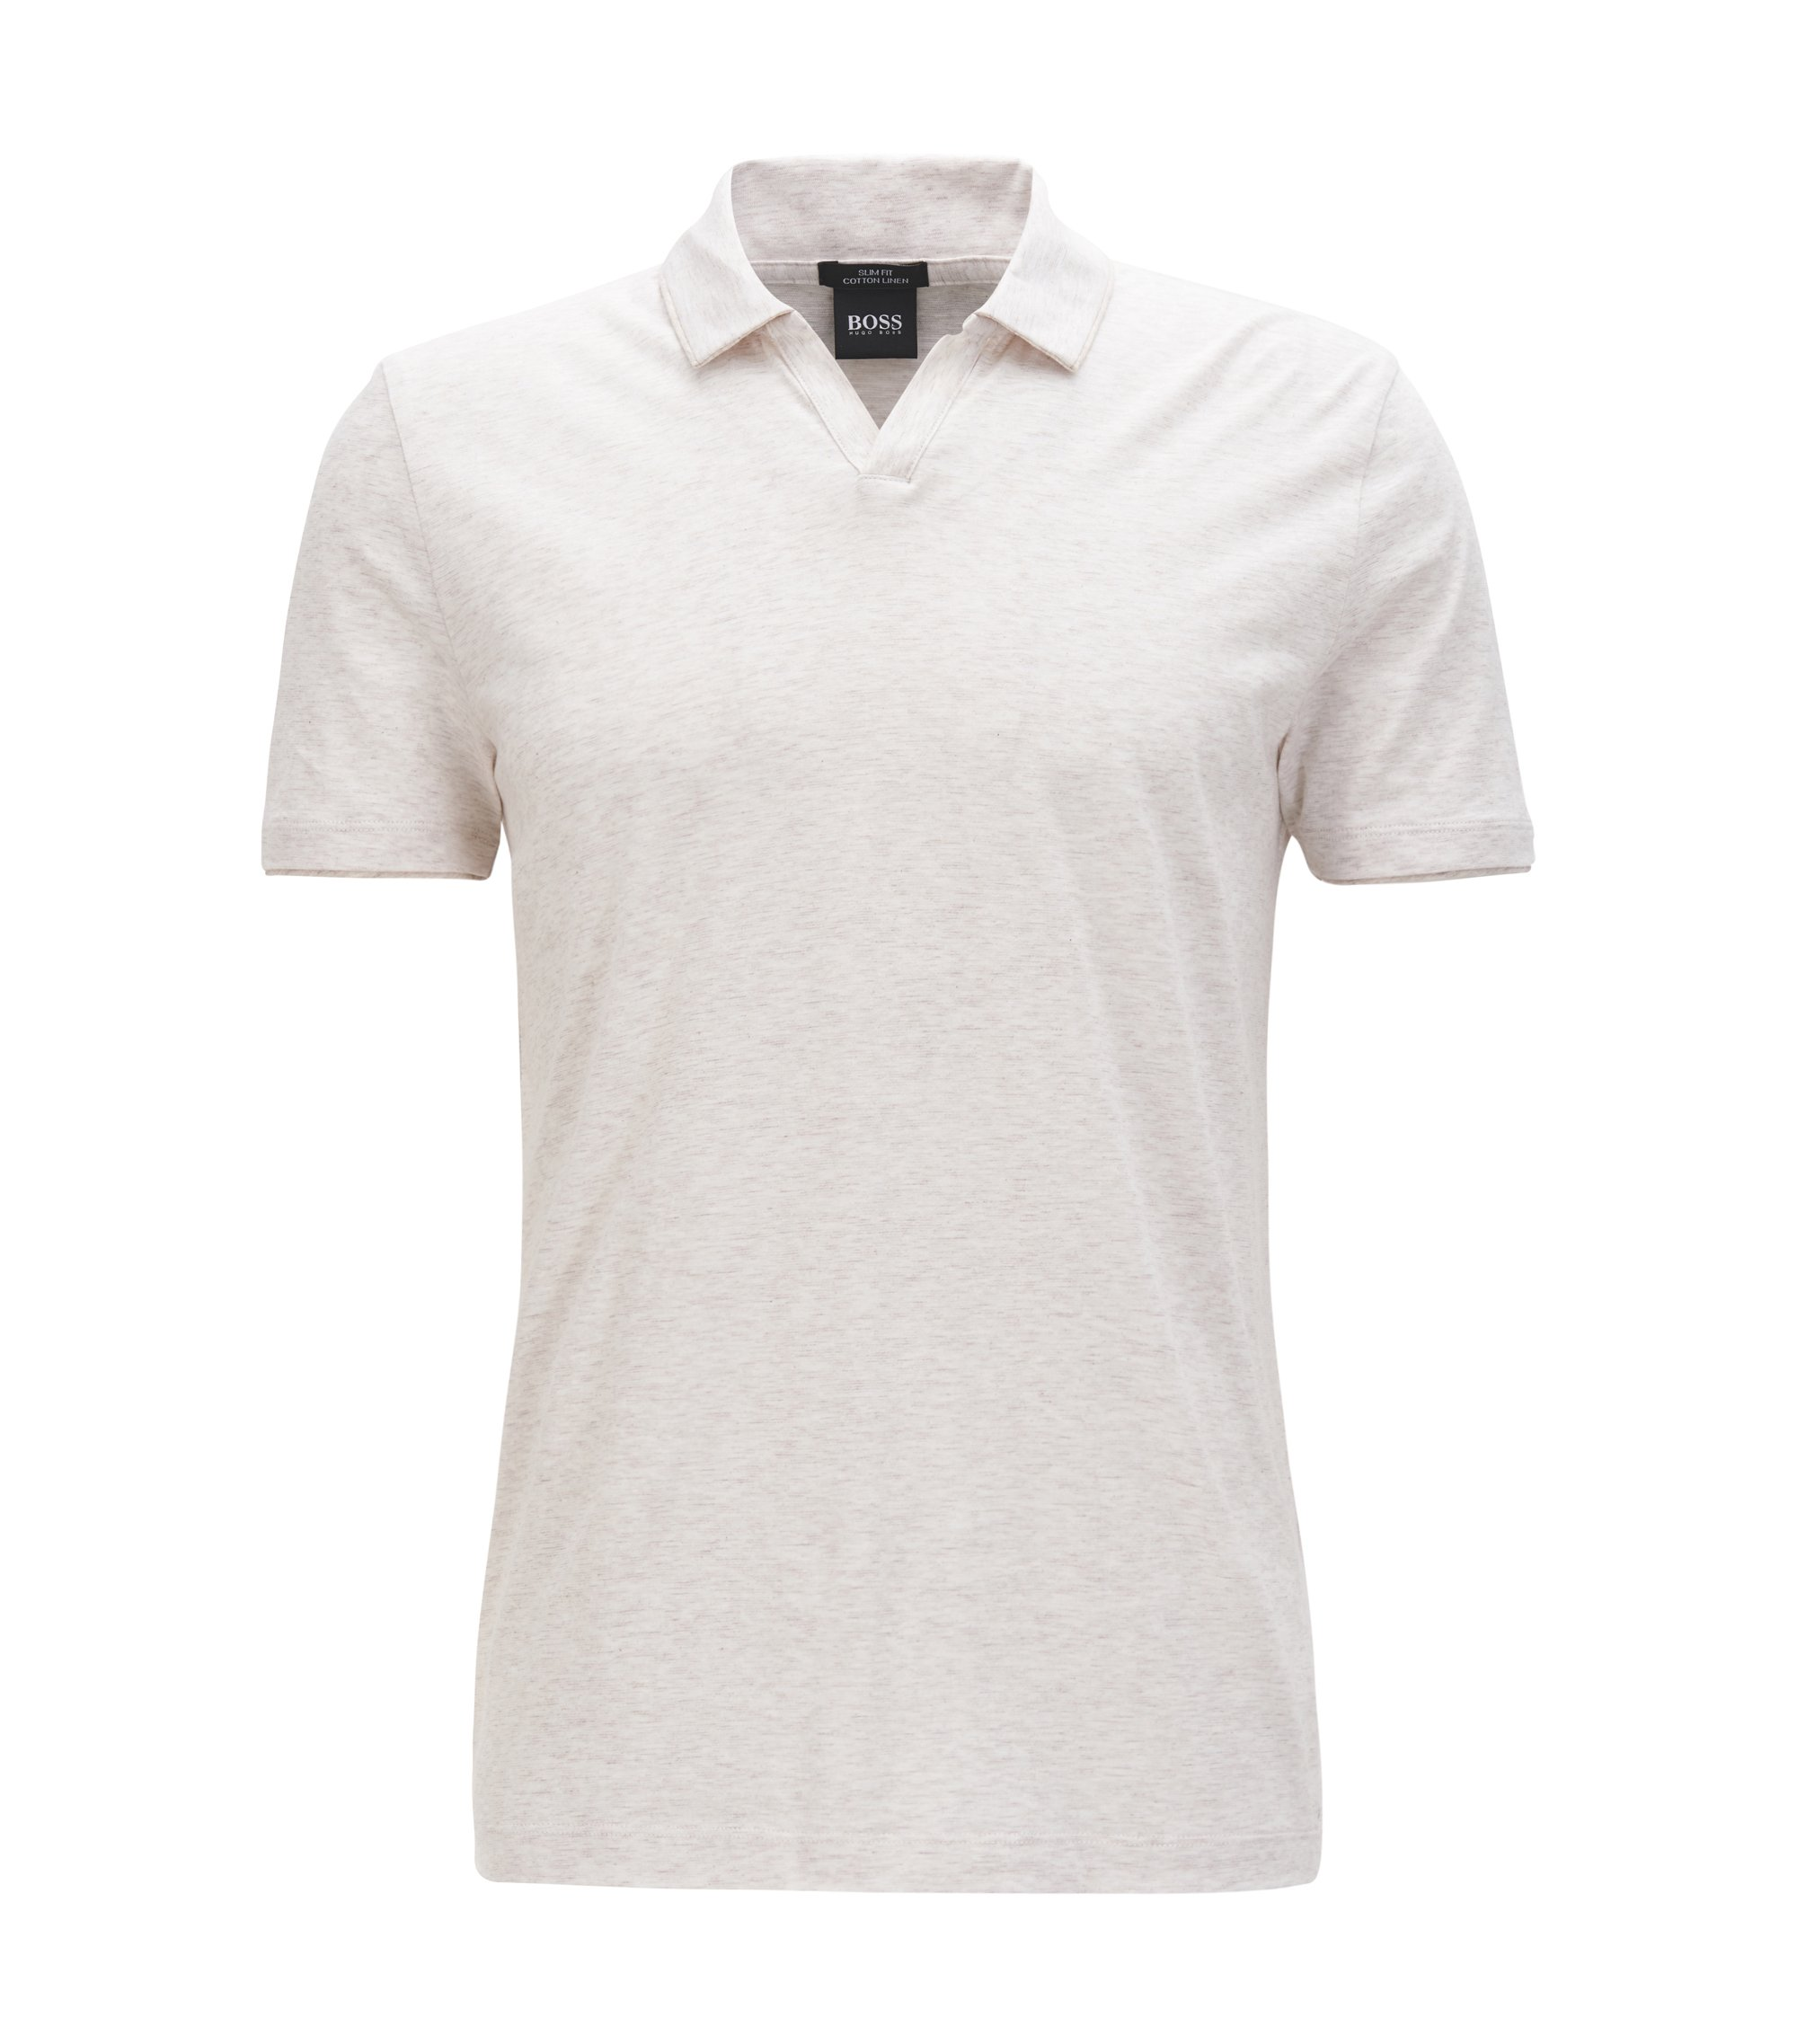 Cotton Linen Polo Shirt, Slim Fit | Plato, Natural